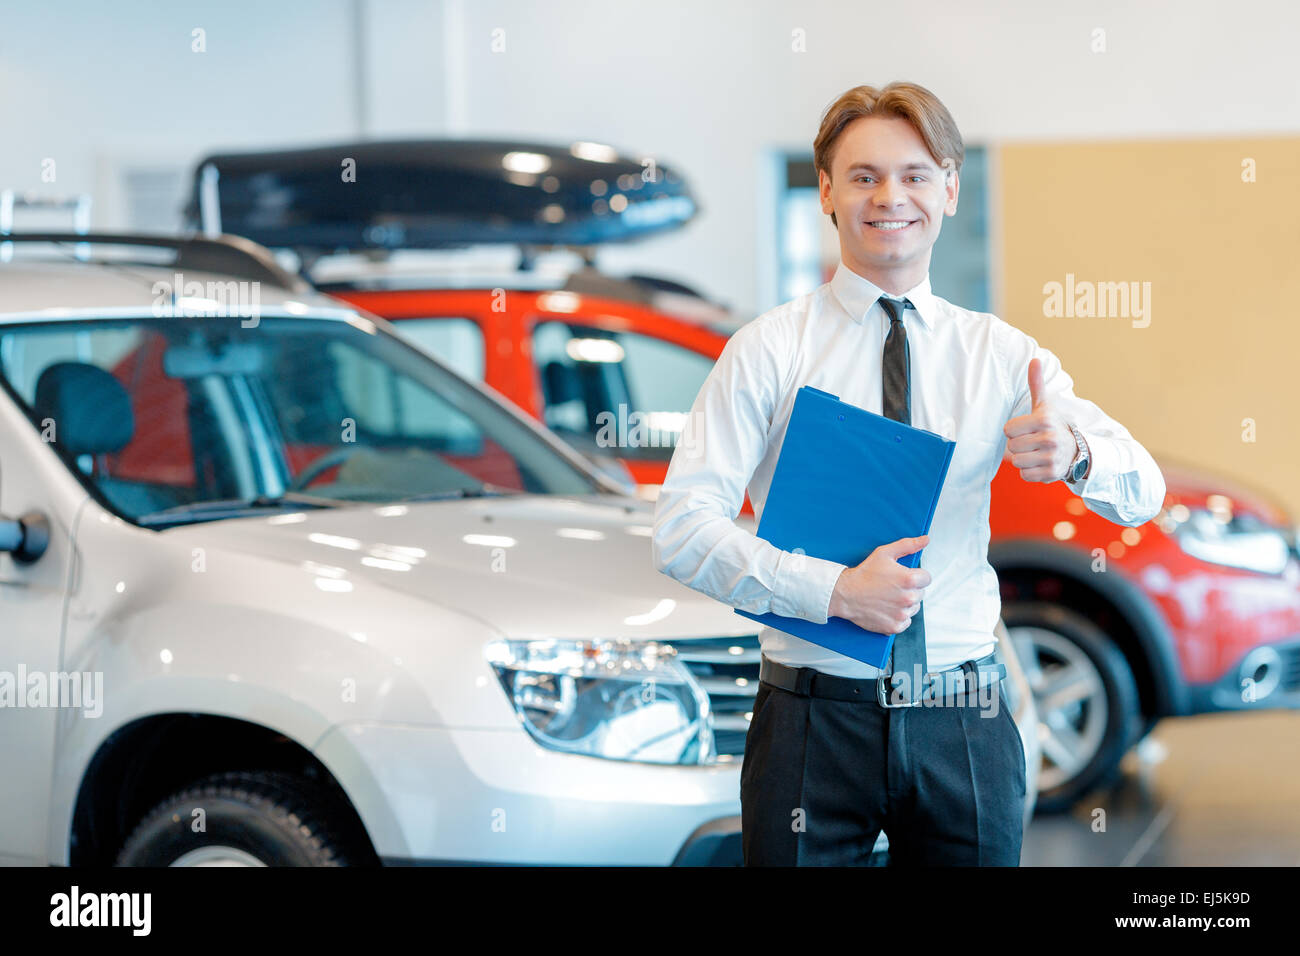 Young smiling salesman with clipboard in car dealership - Stock Image